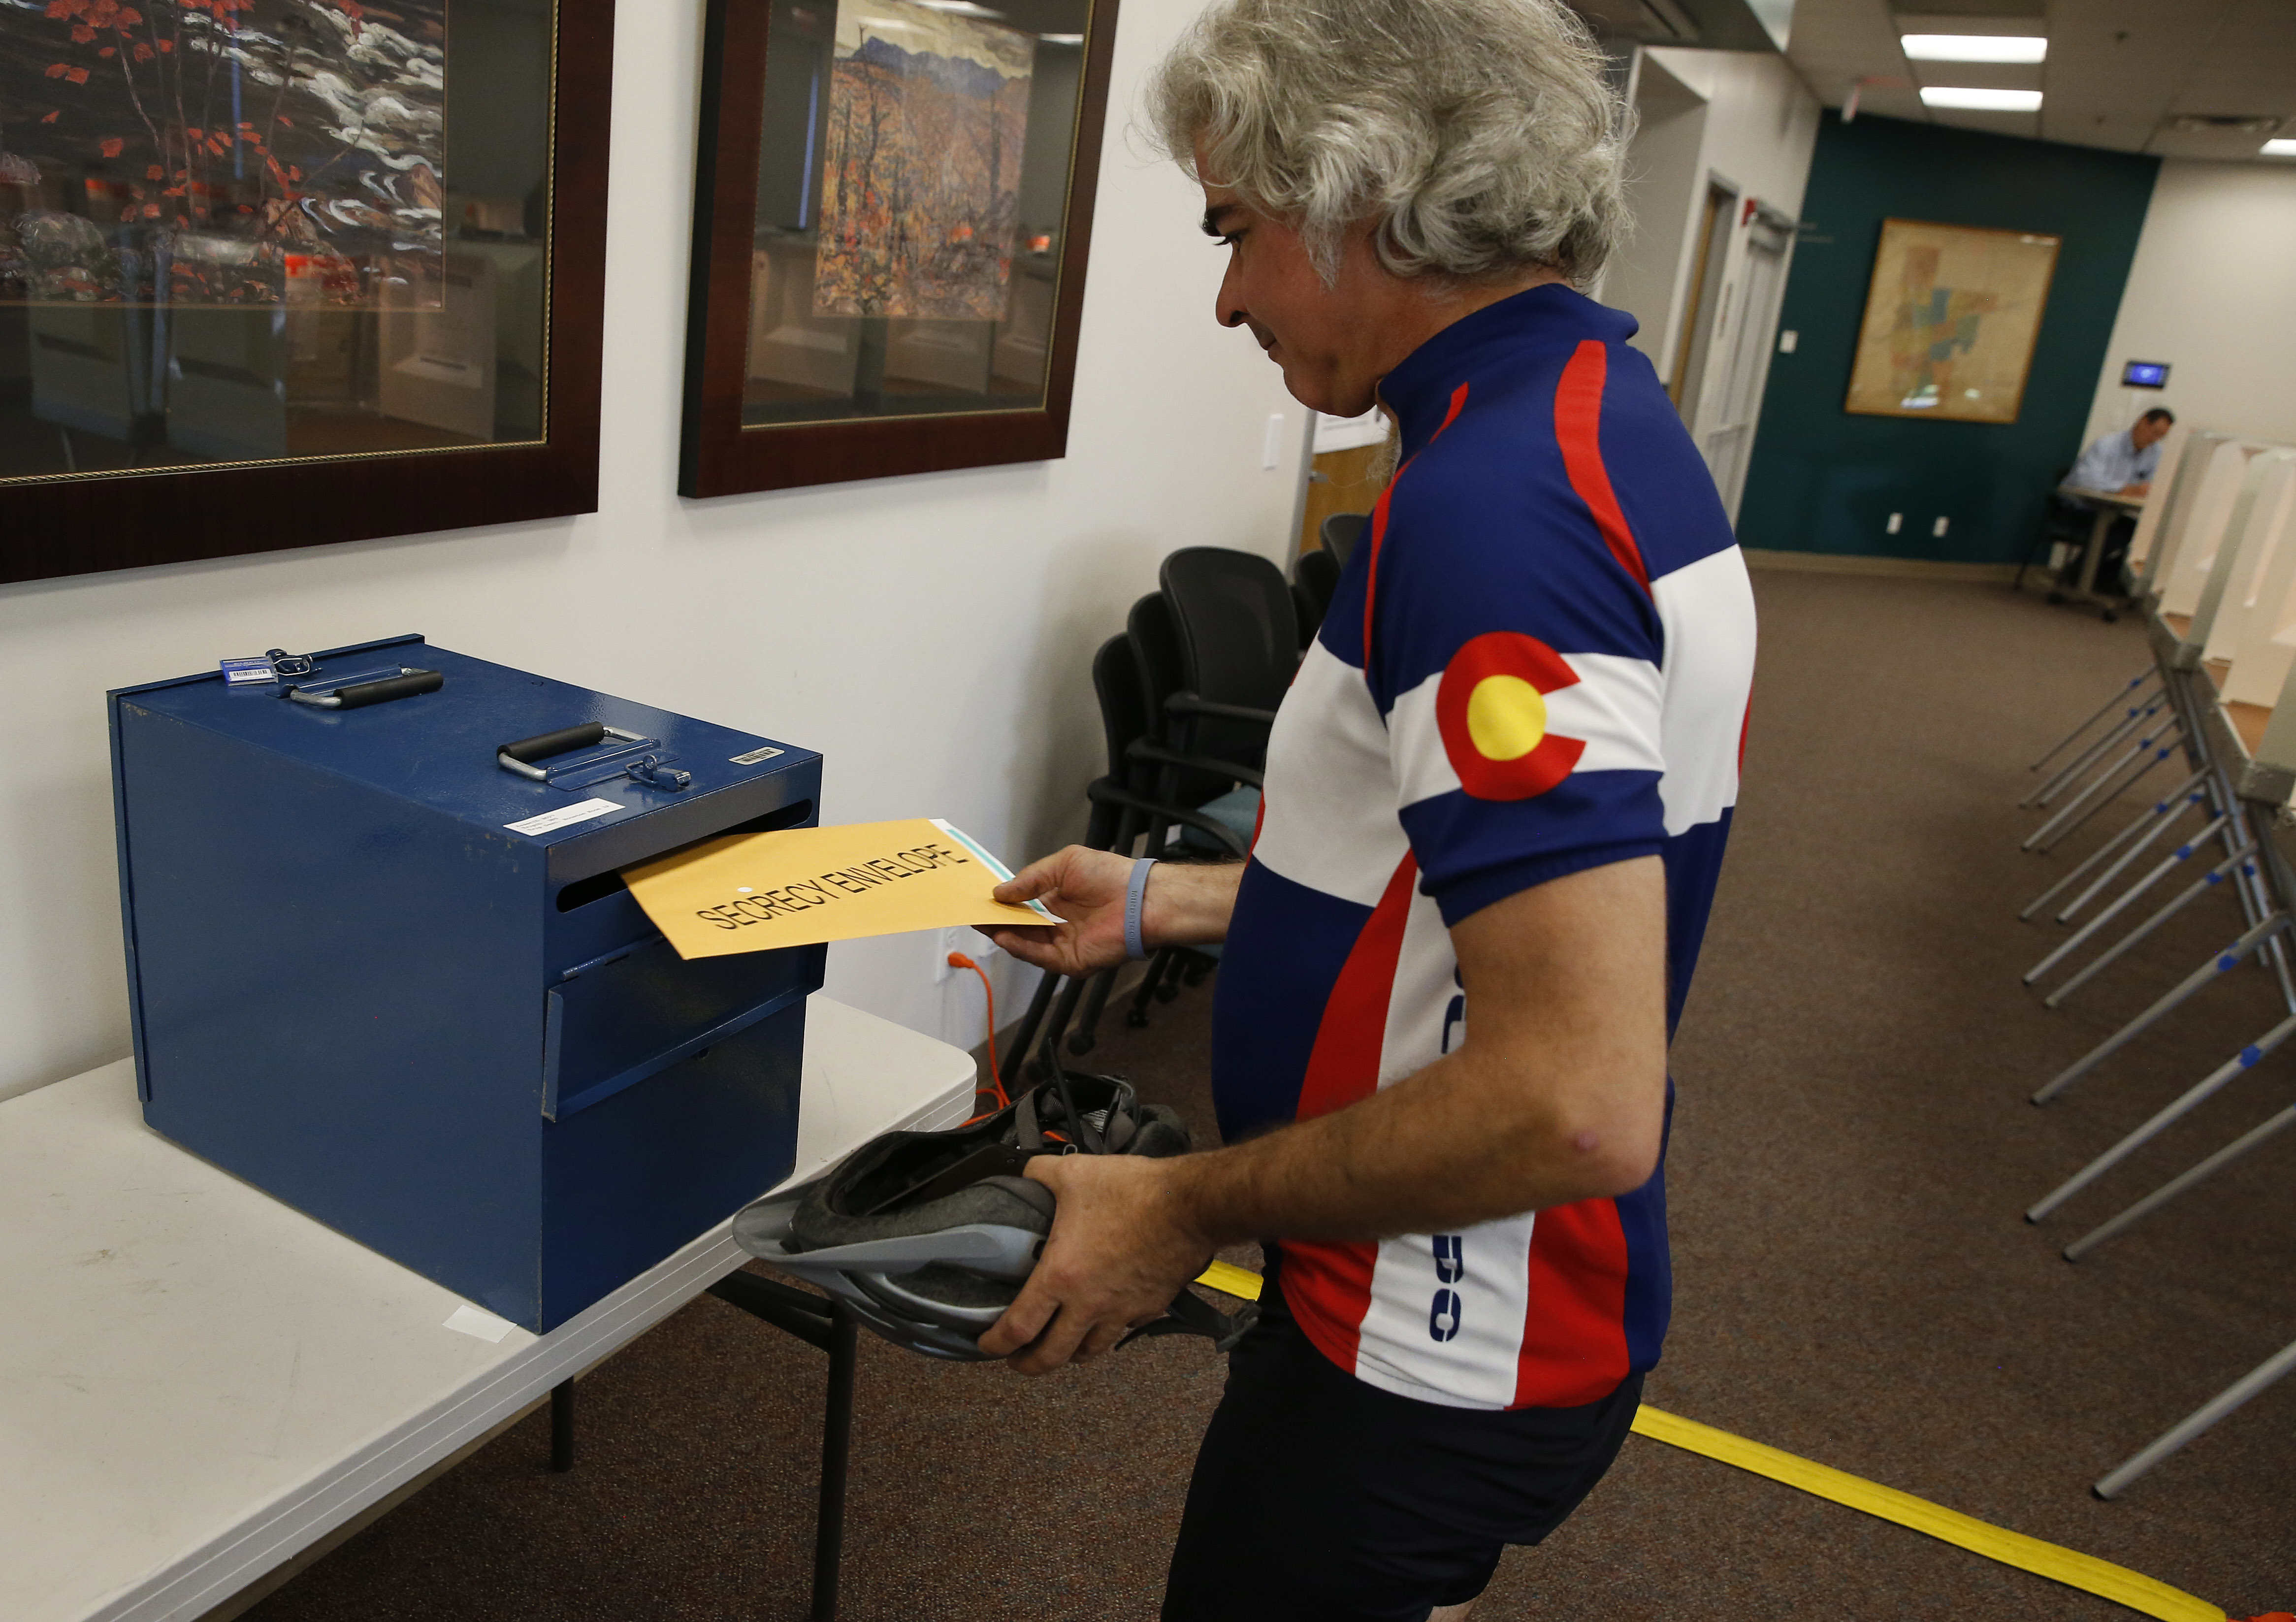 <p>A voter places his ballot into a collection box after filling it in at a polling center, on state primary election day, in Boulder, Colo., Tuesday, June 28, 2016.</p>